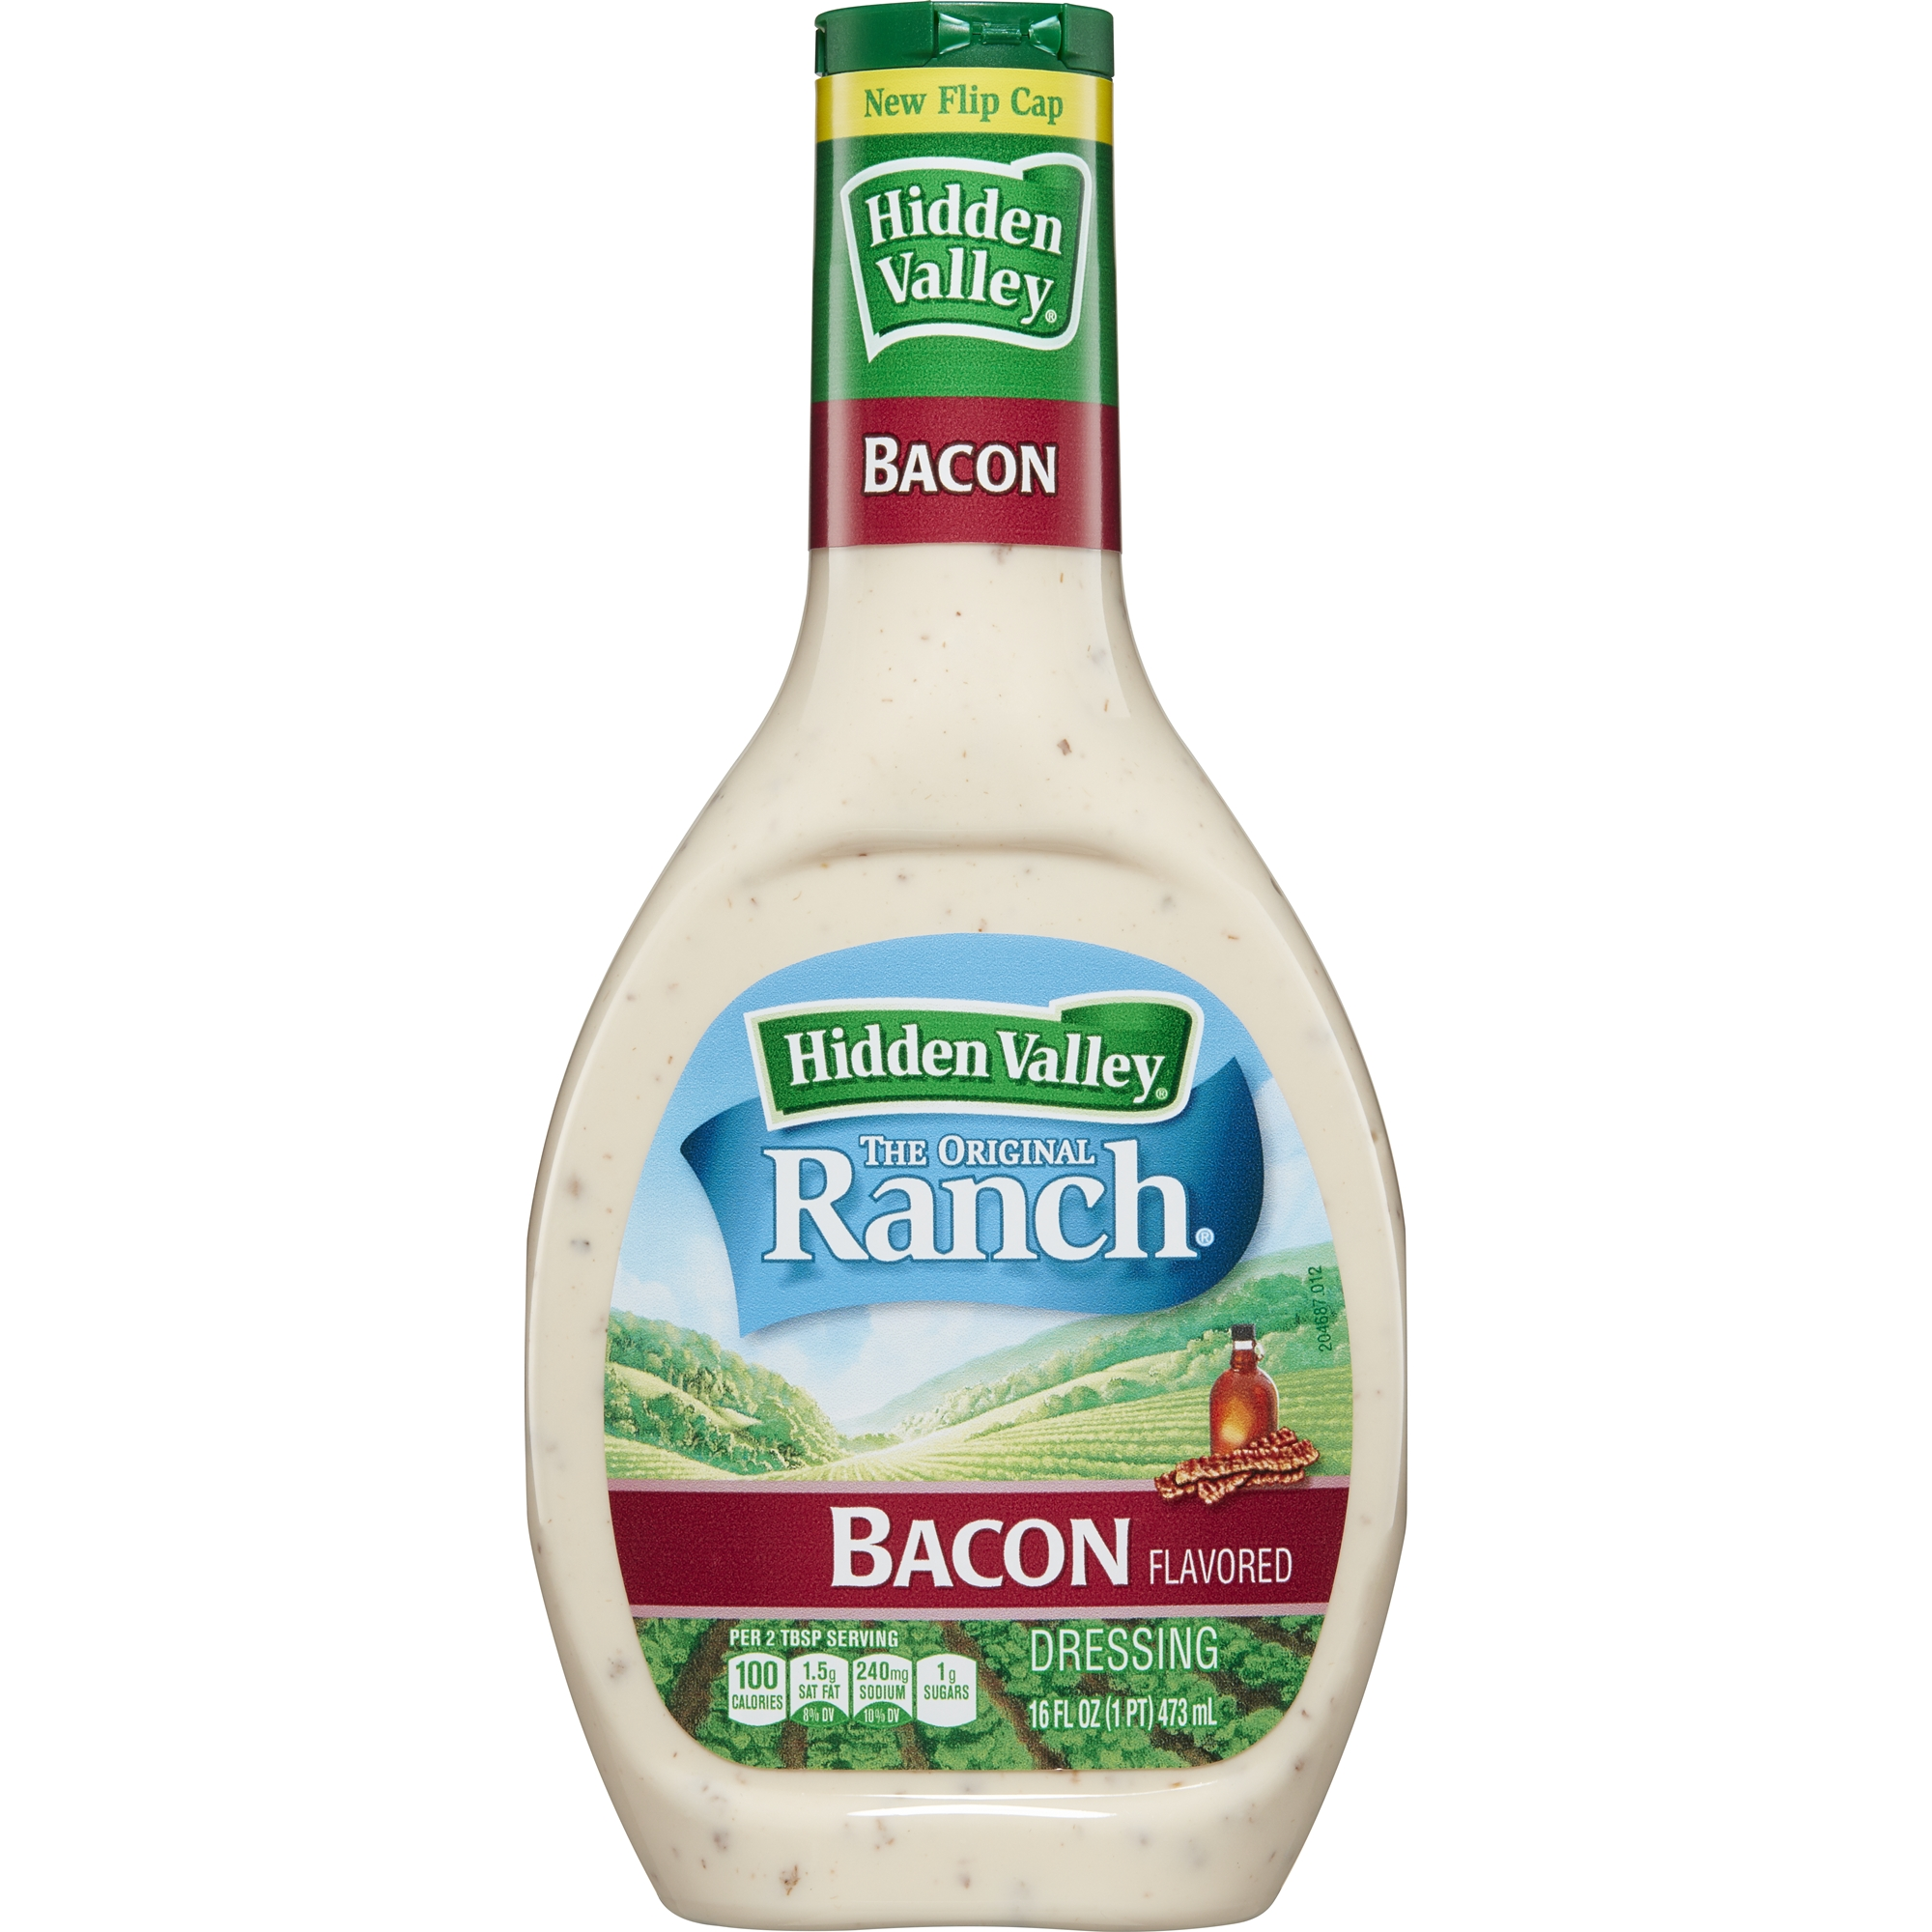 Hidden Valley Bacon Ranch Salad Dressing & Topping, Gluten Free - 16 oz Bottle